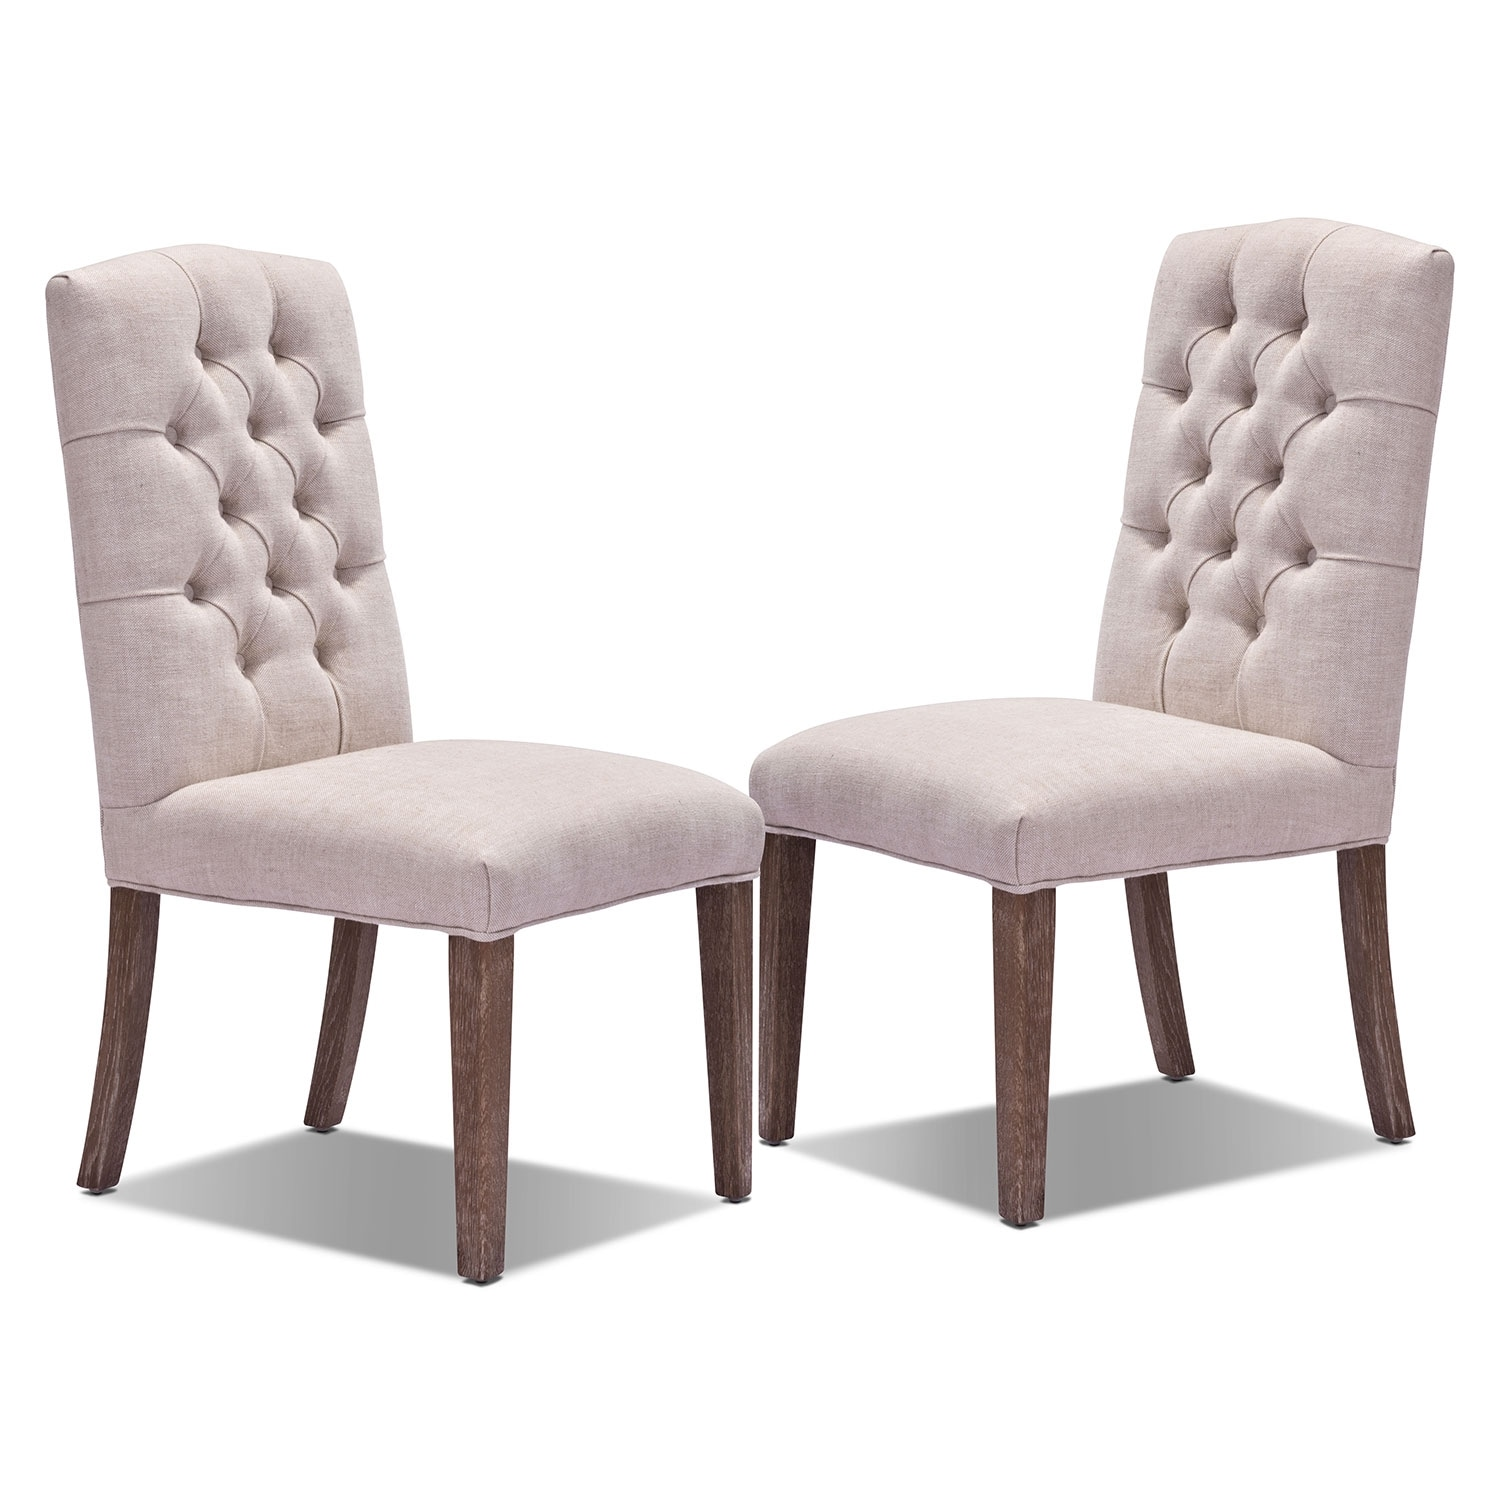 Dakota 2-Pack Chairs - Light Beige